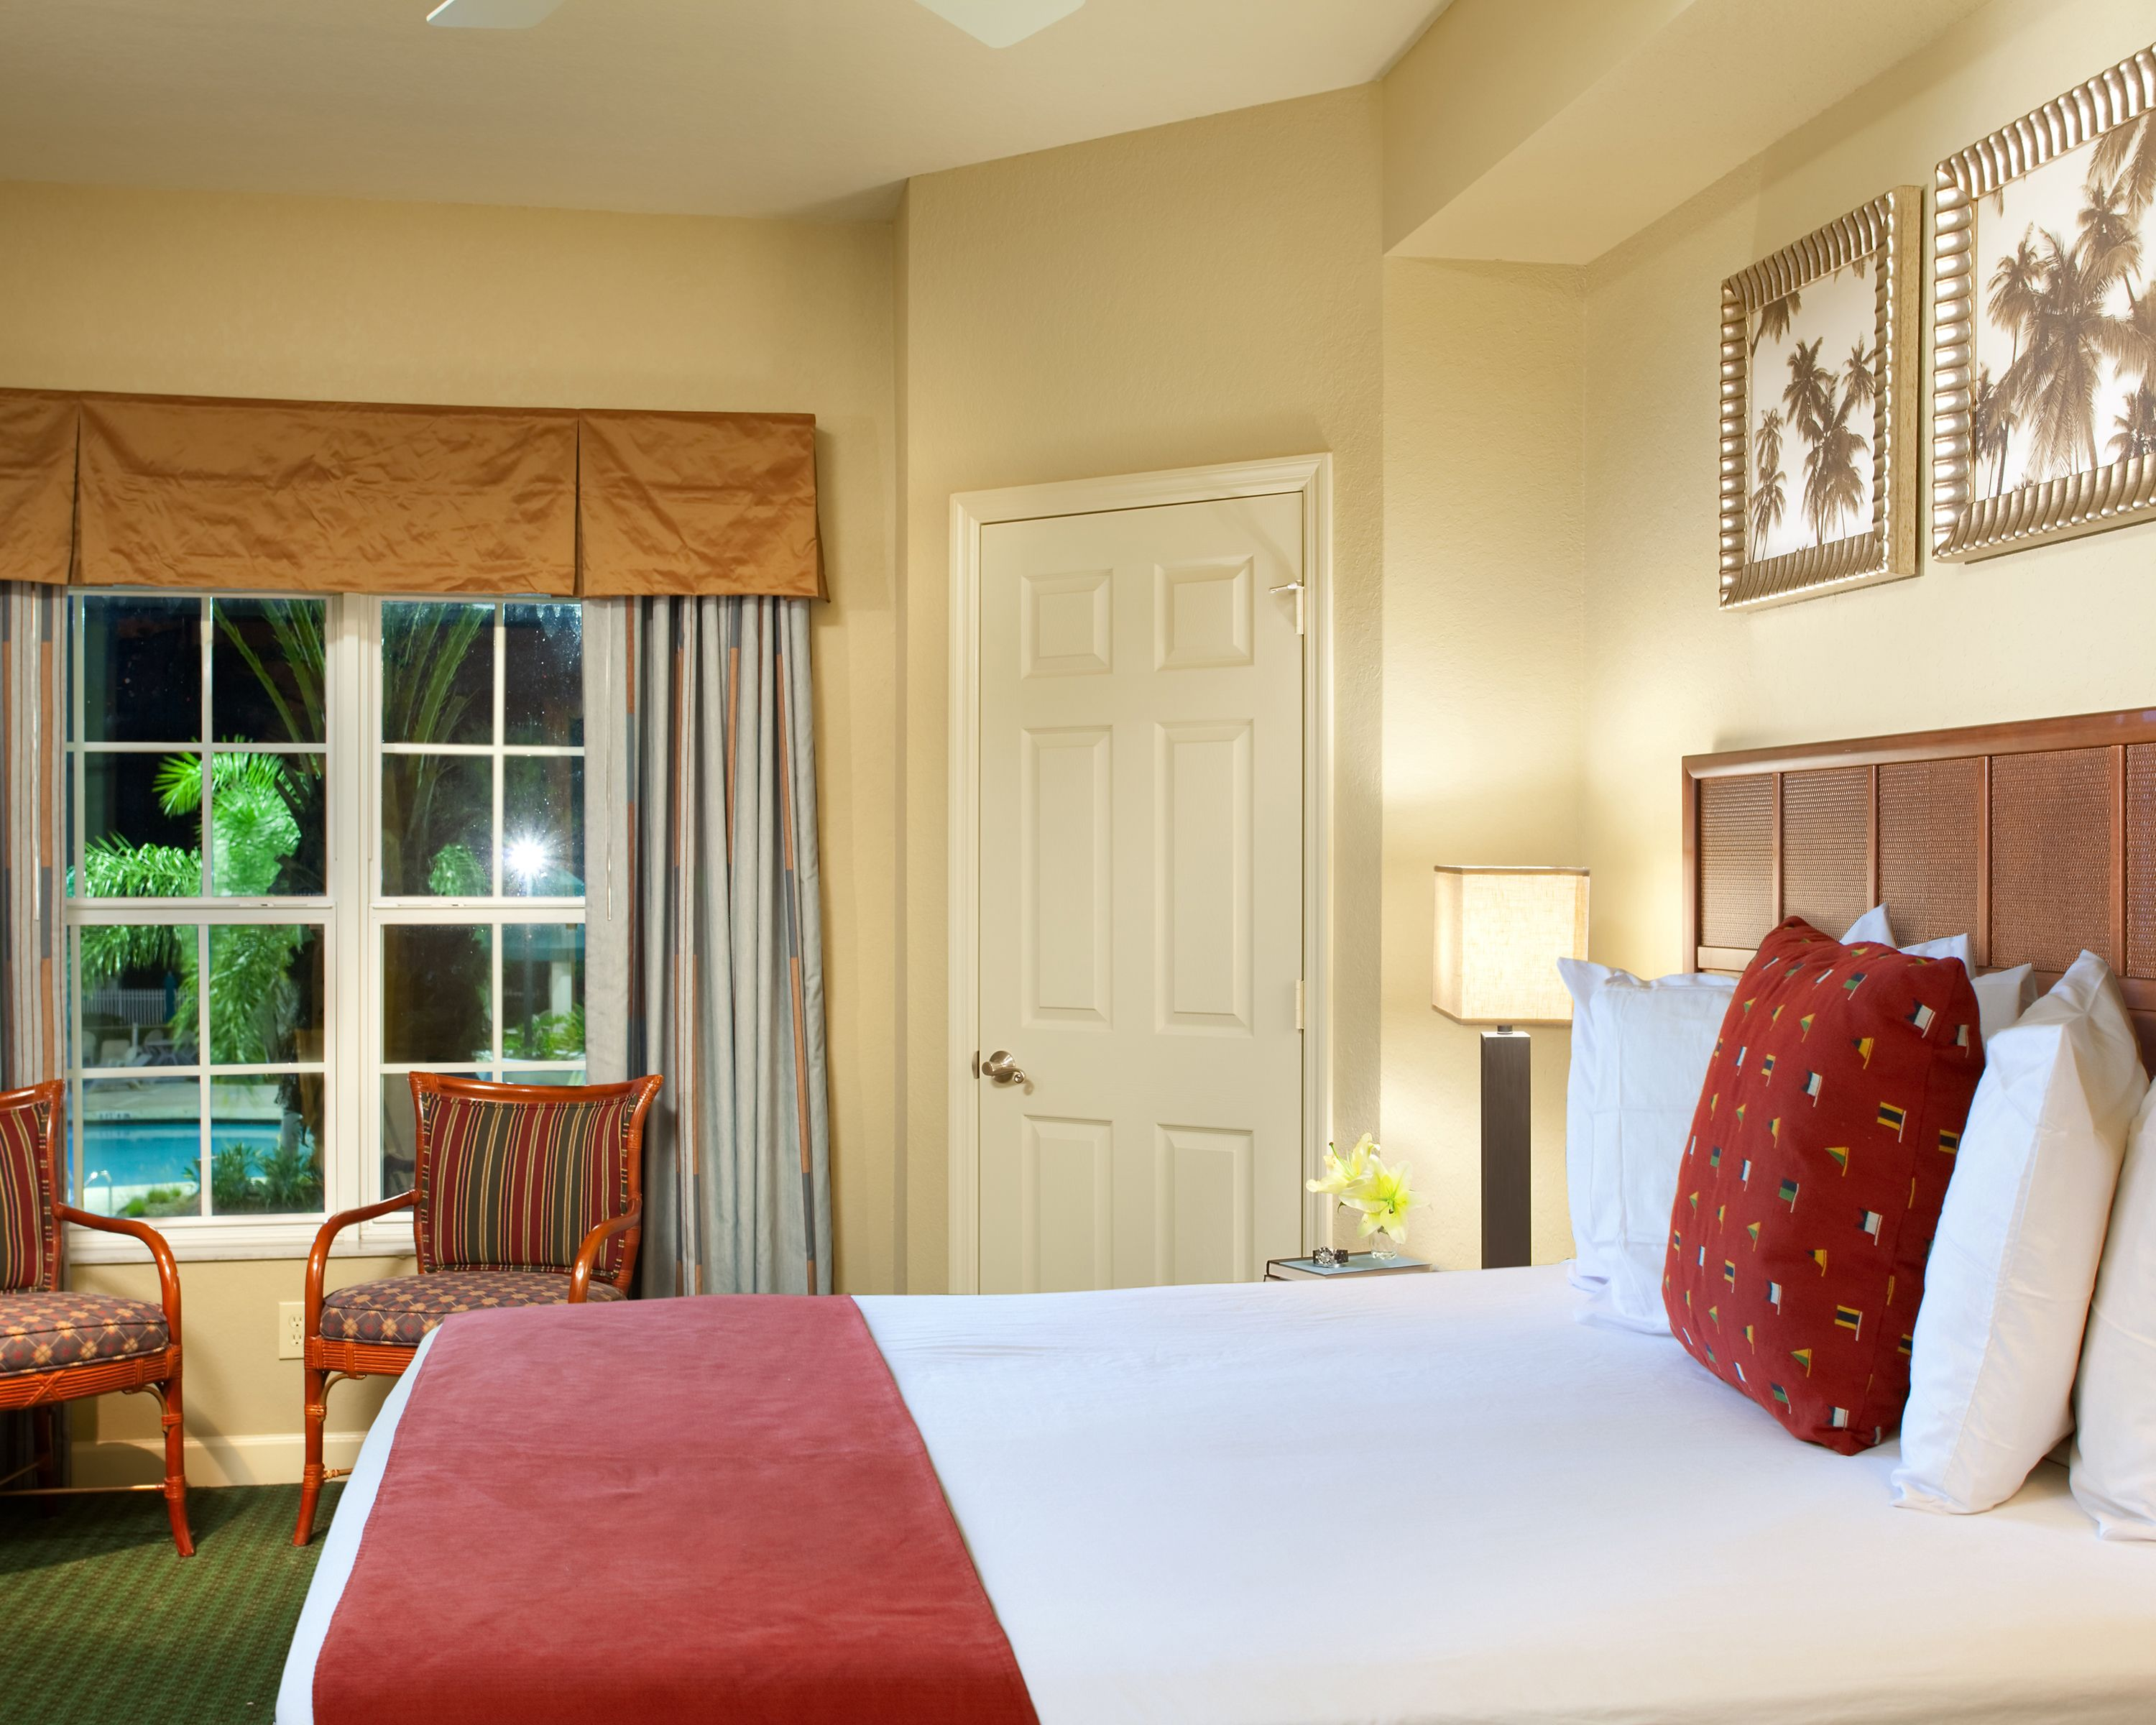 Relax In Country Club Inspired 1 And 2 Bedroom Suites At Bluegreen Vacations Grande Villas At World Golf V Dream Honeymoon Hotel St Augustine 2 Bedroom Suites